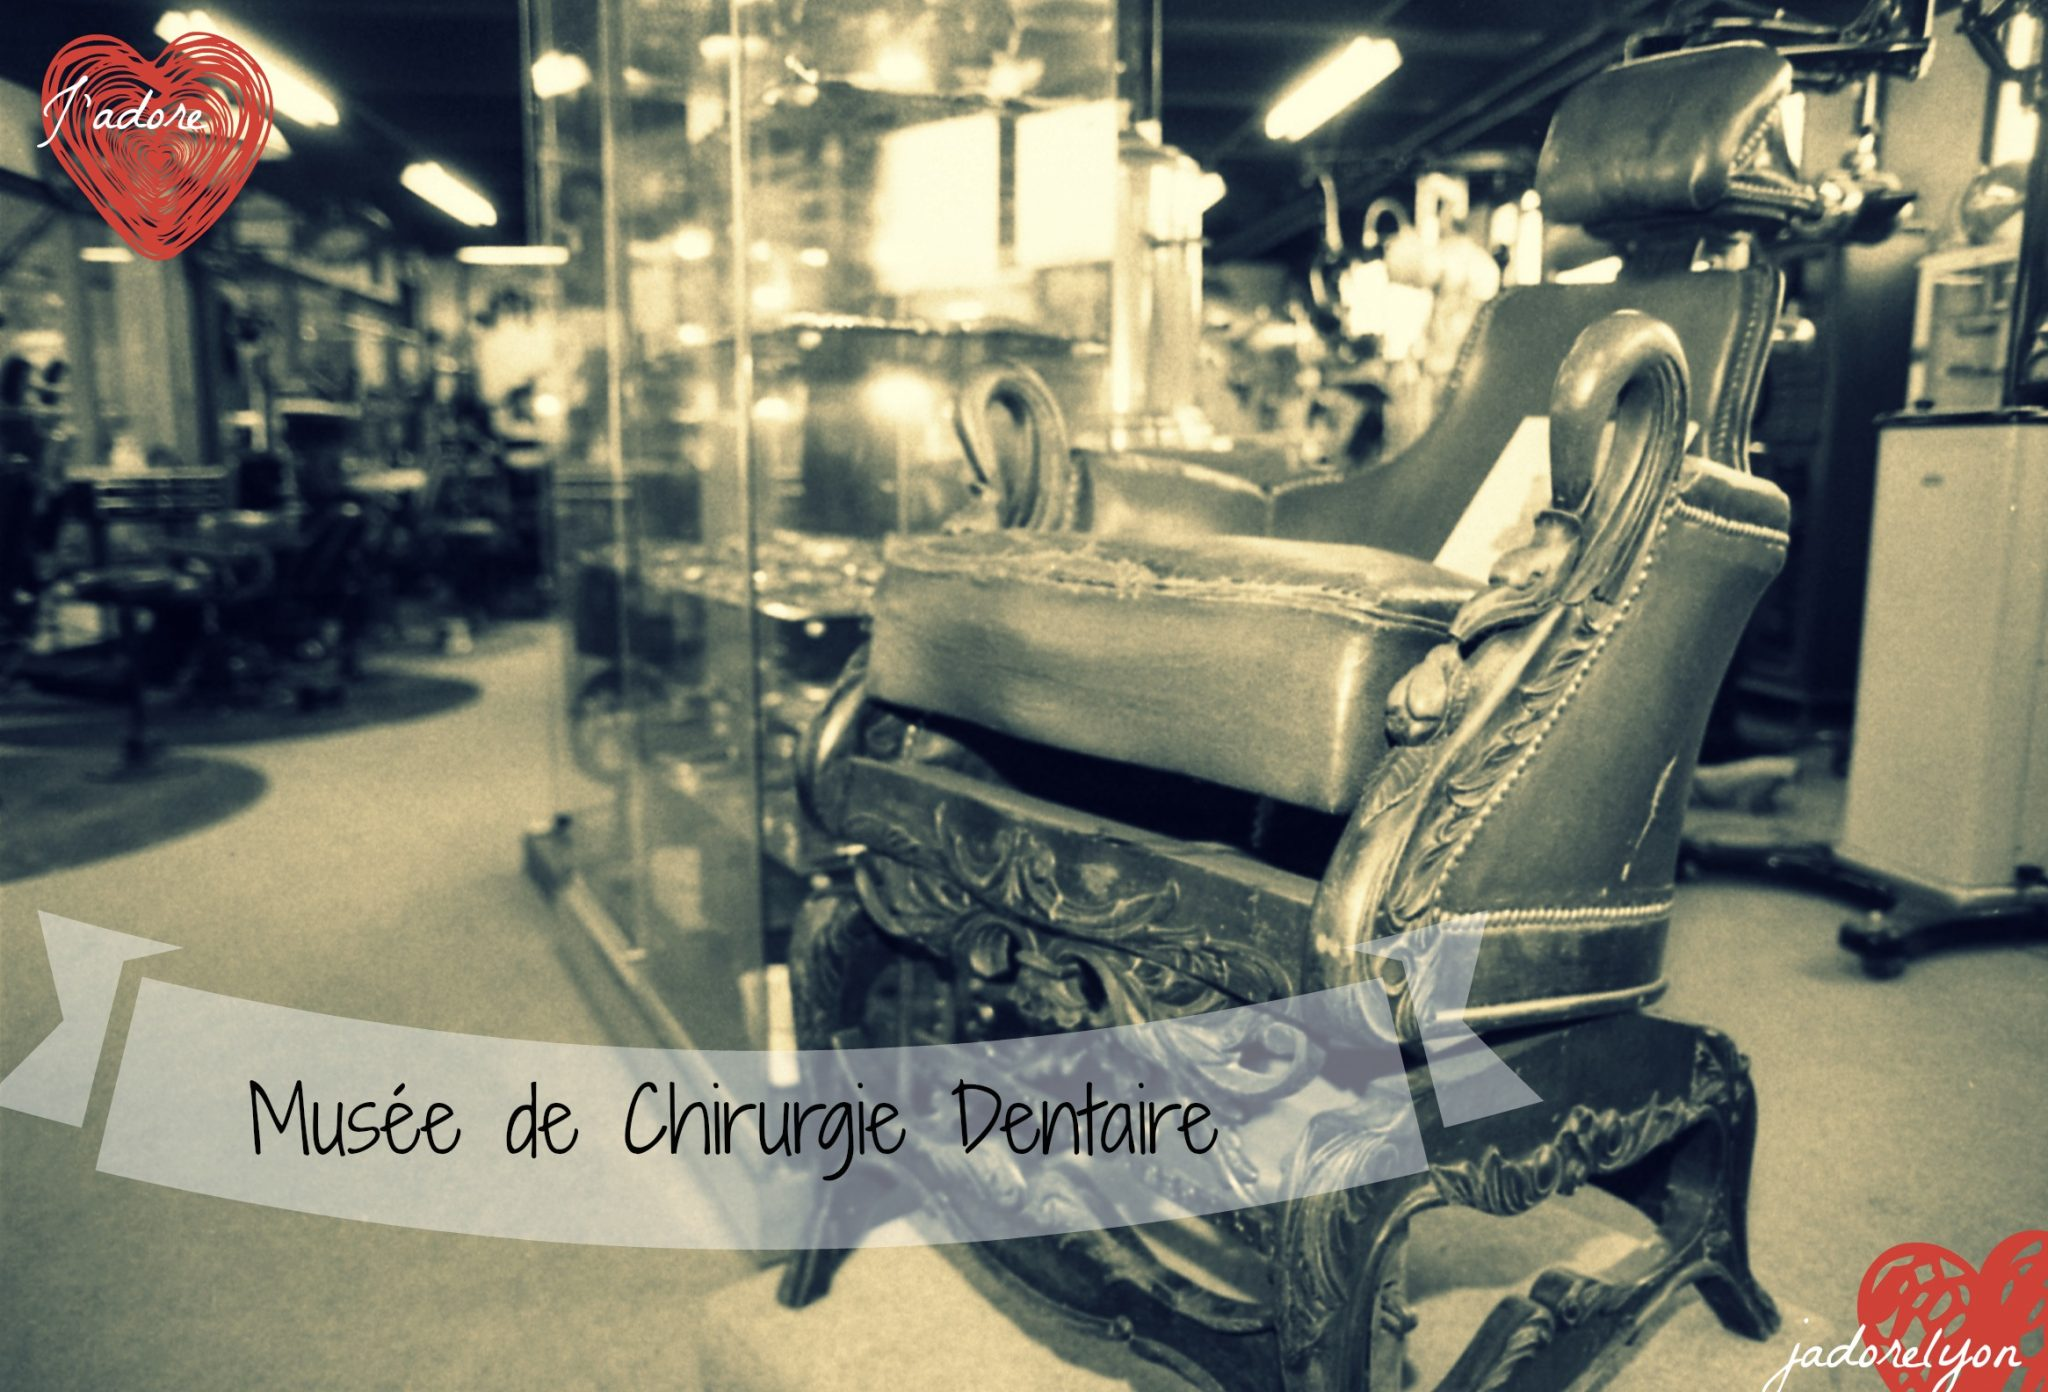 Musee de Chirurgie Dentaire